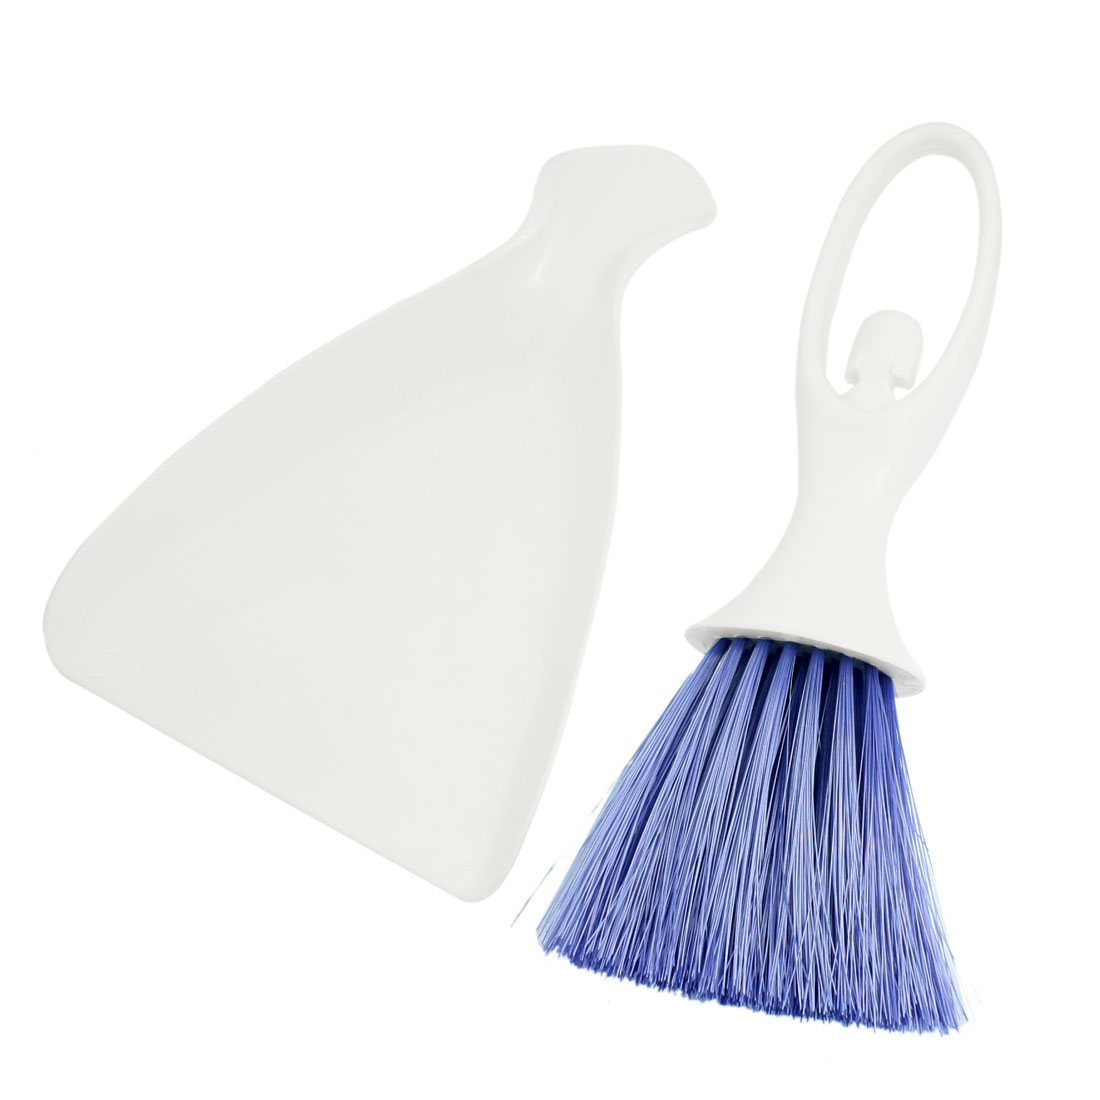 Blue White Car Air Conditioner Cleaning Sweeping Whisk Broom Dustpan Set